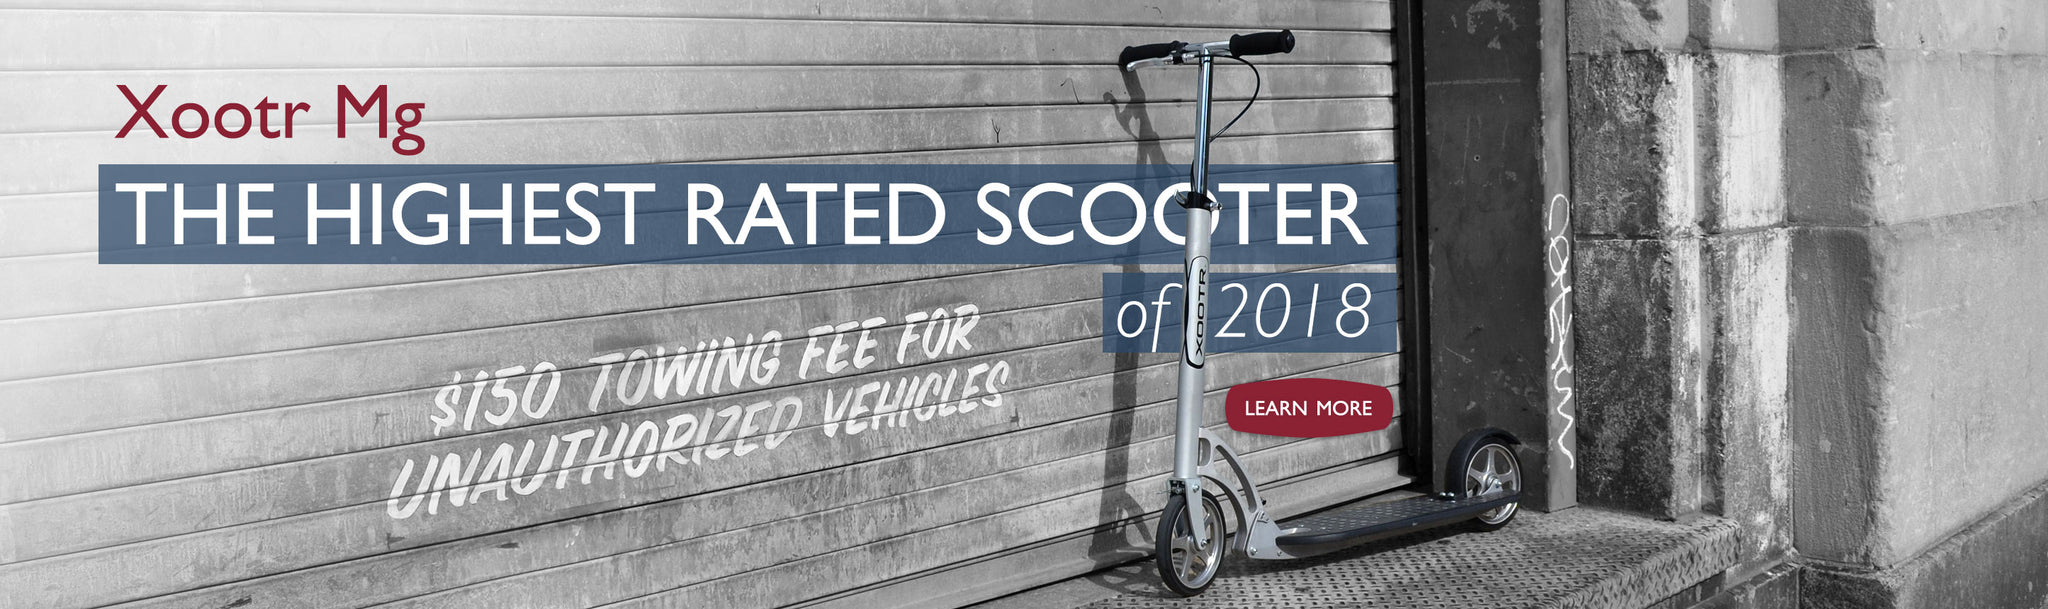 Xootr Mg Highest Rated Scooter of 2018